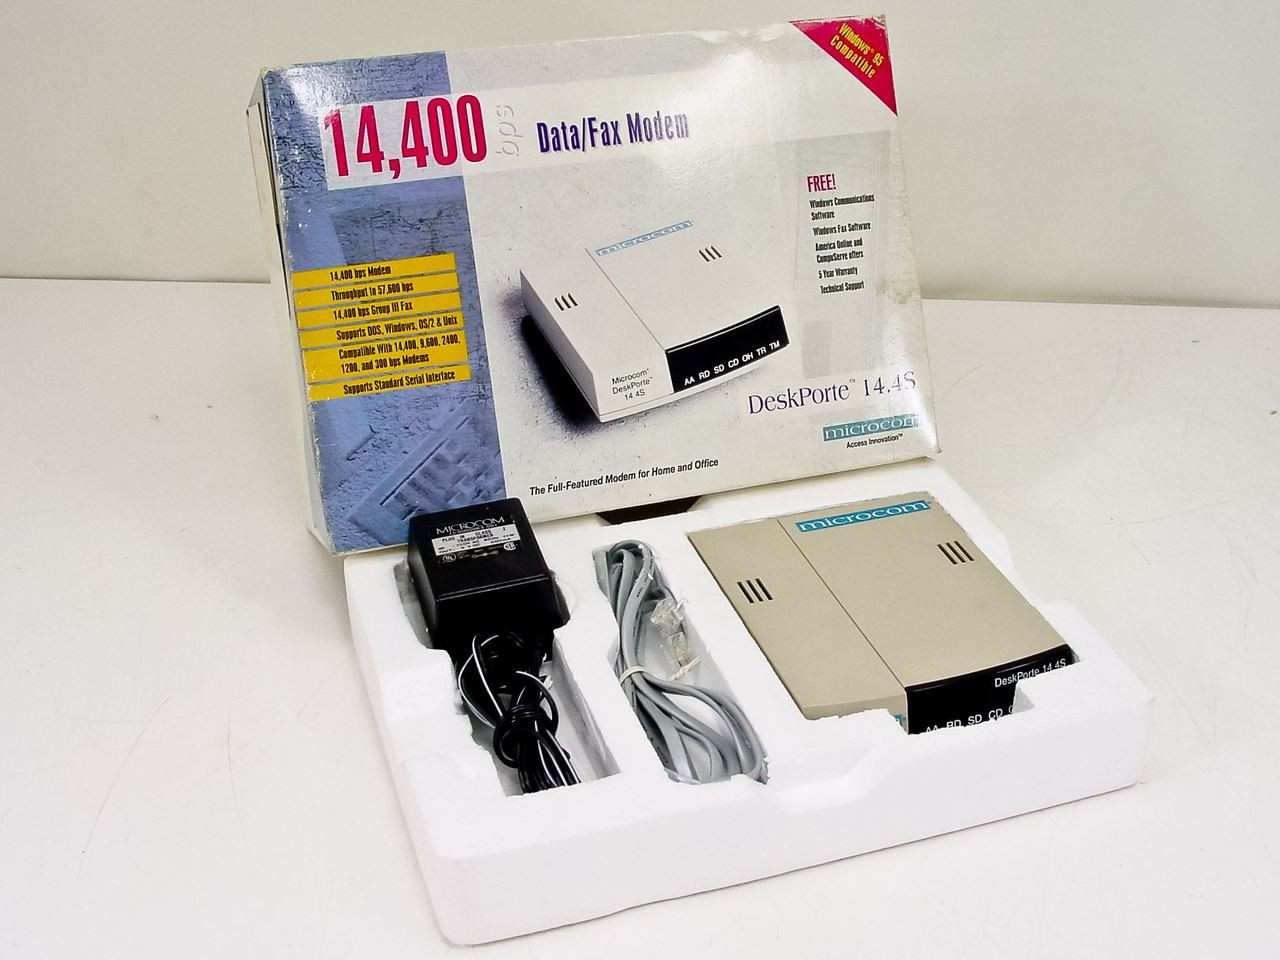 DRIVER FOR 14.4 BPS DATA FAX MODEM